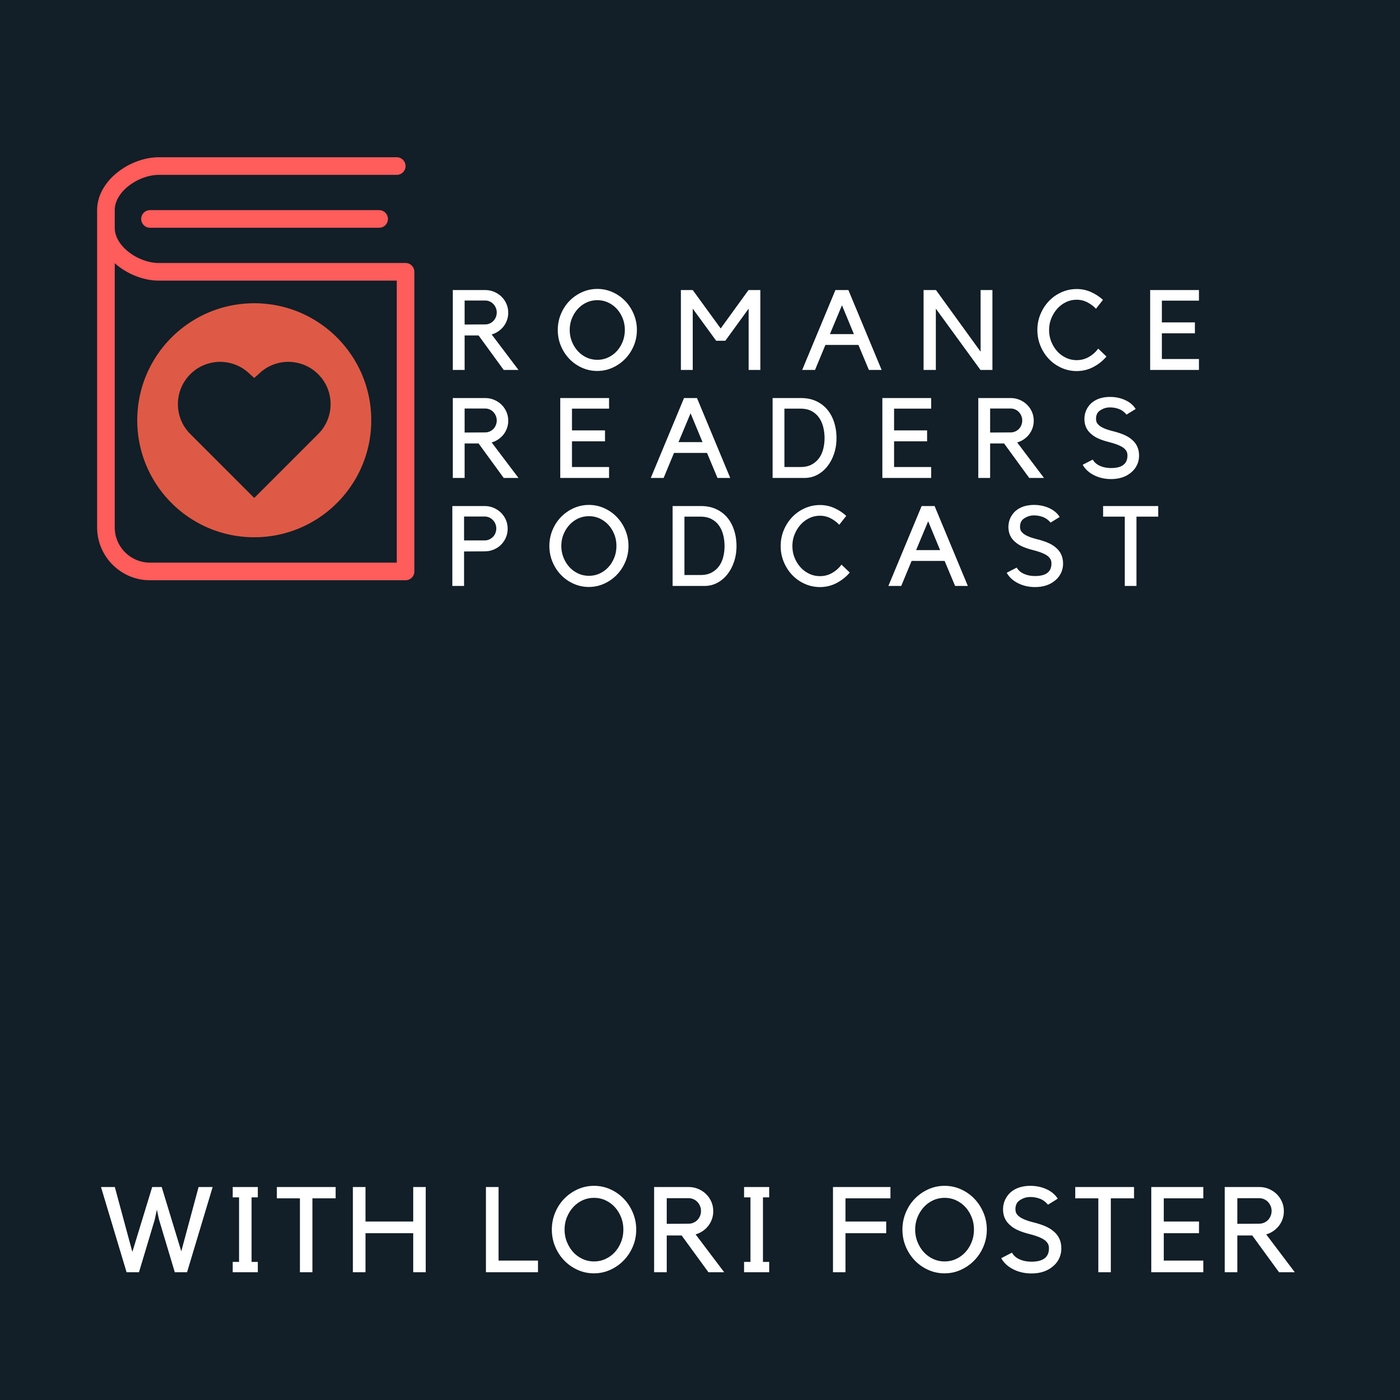 Romance Readers Podcast With Lori Foster show art